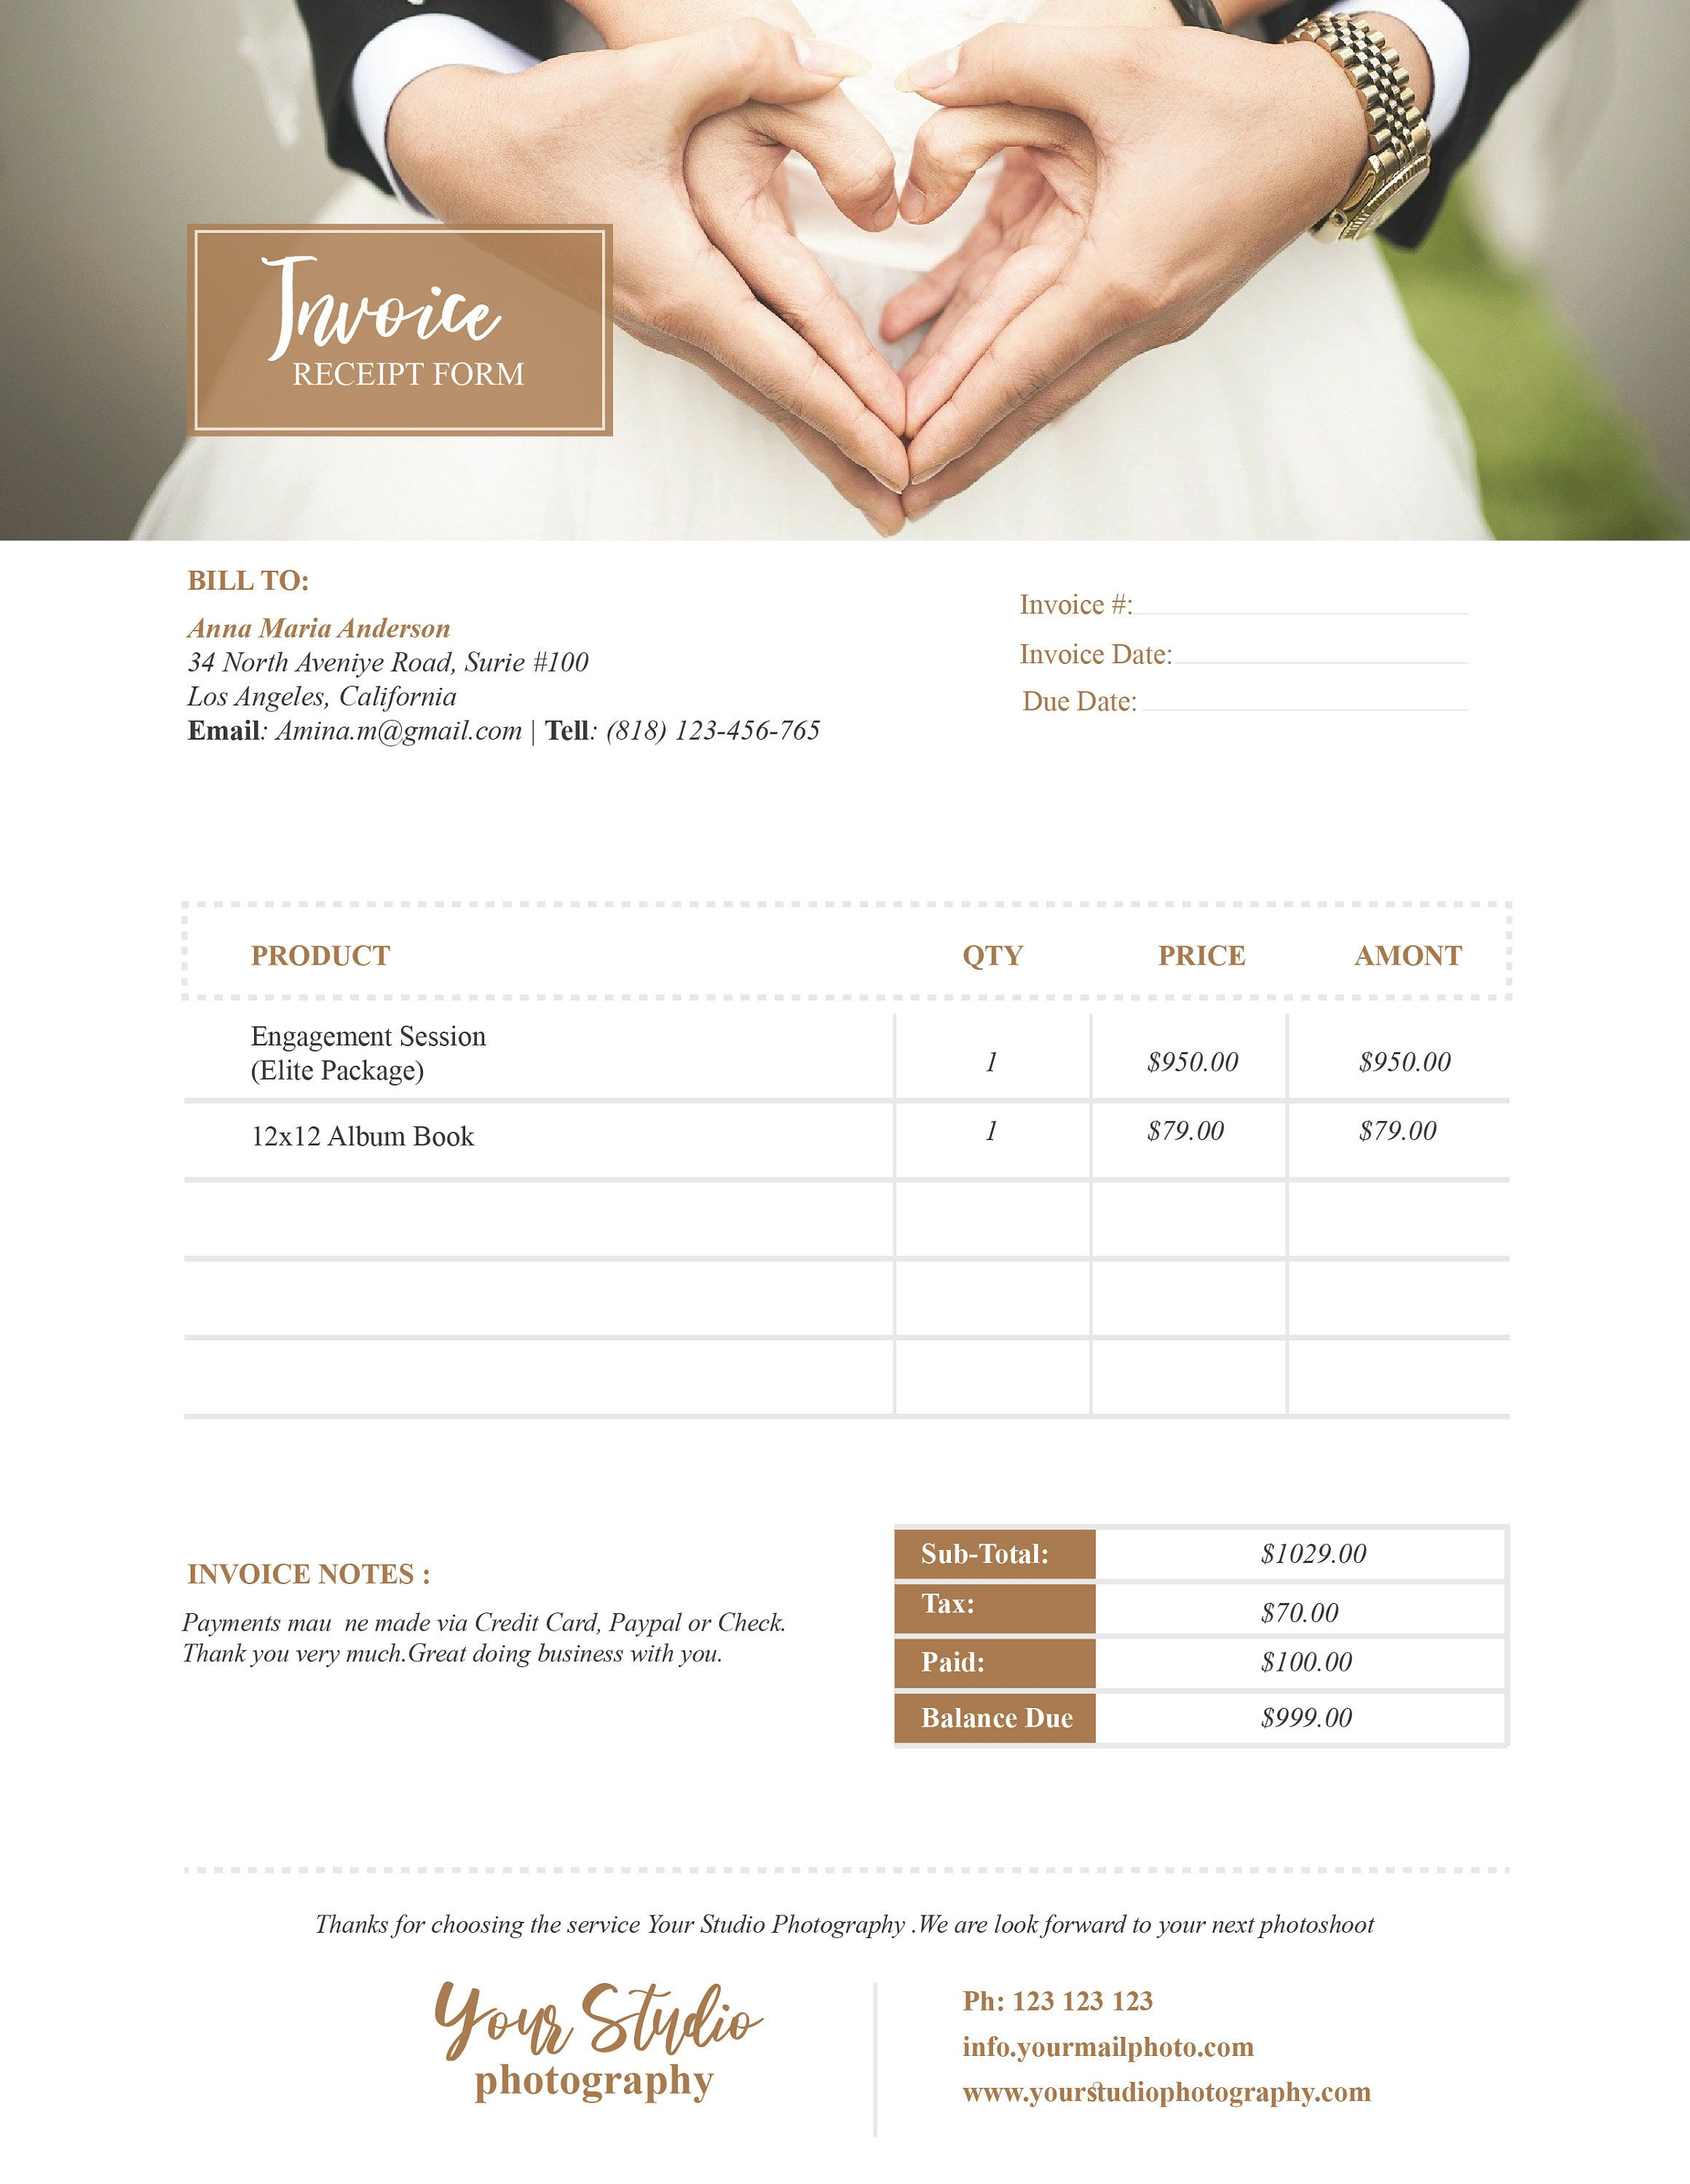 Wedding Photography Invoice Template Price Guide List For Photographers Photography Photo Price Photography Invoice Invoice Design Photography Invoice Template